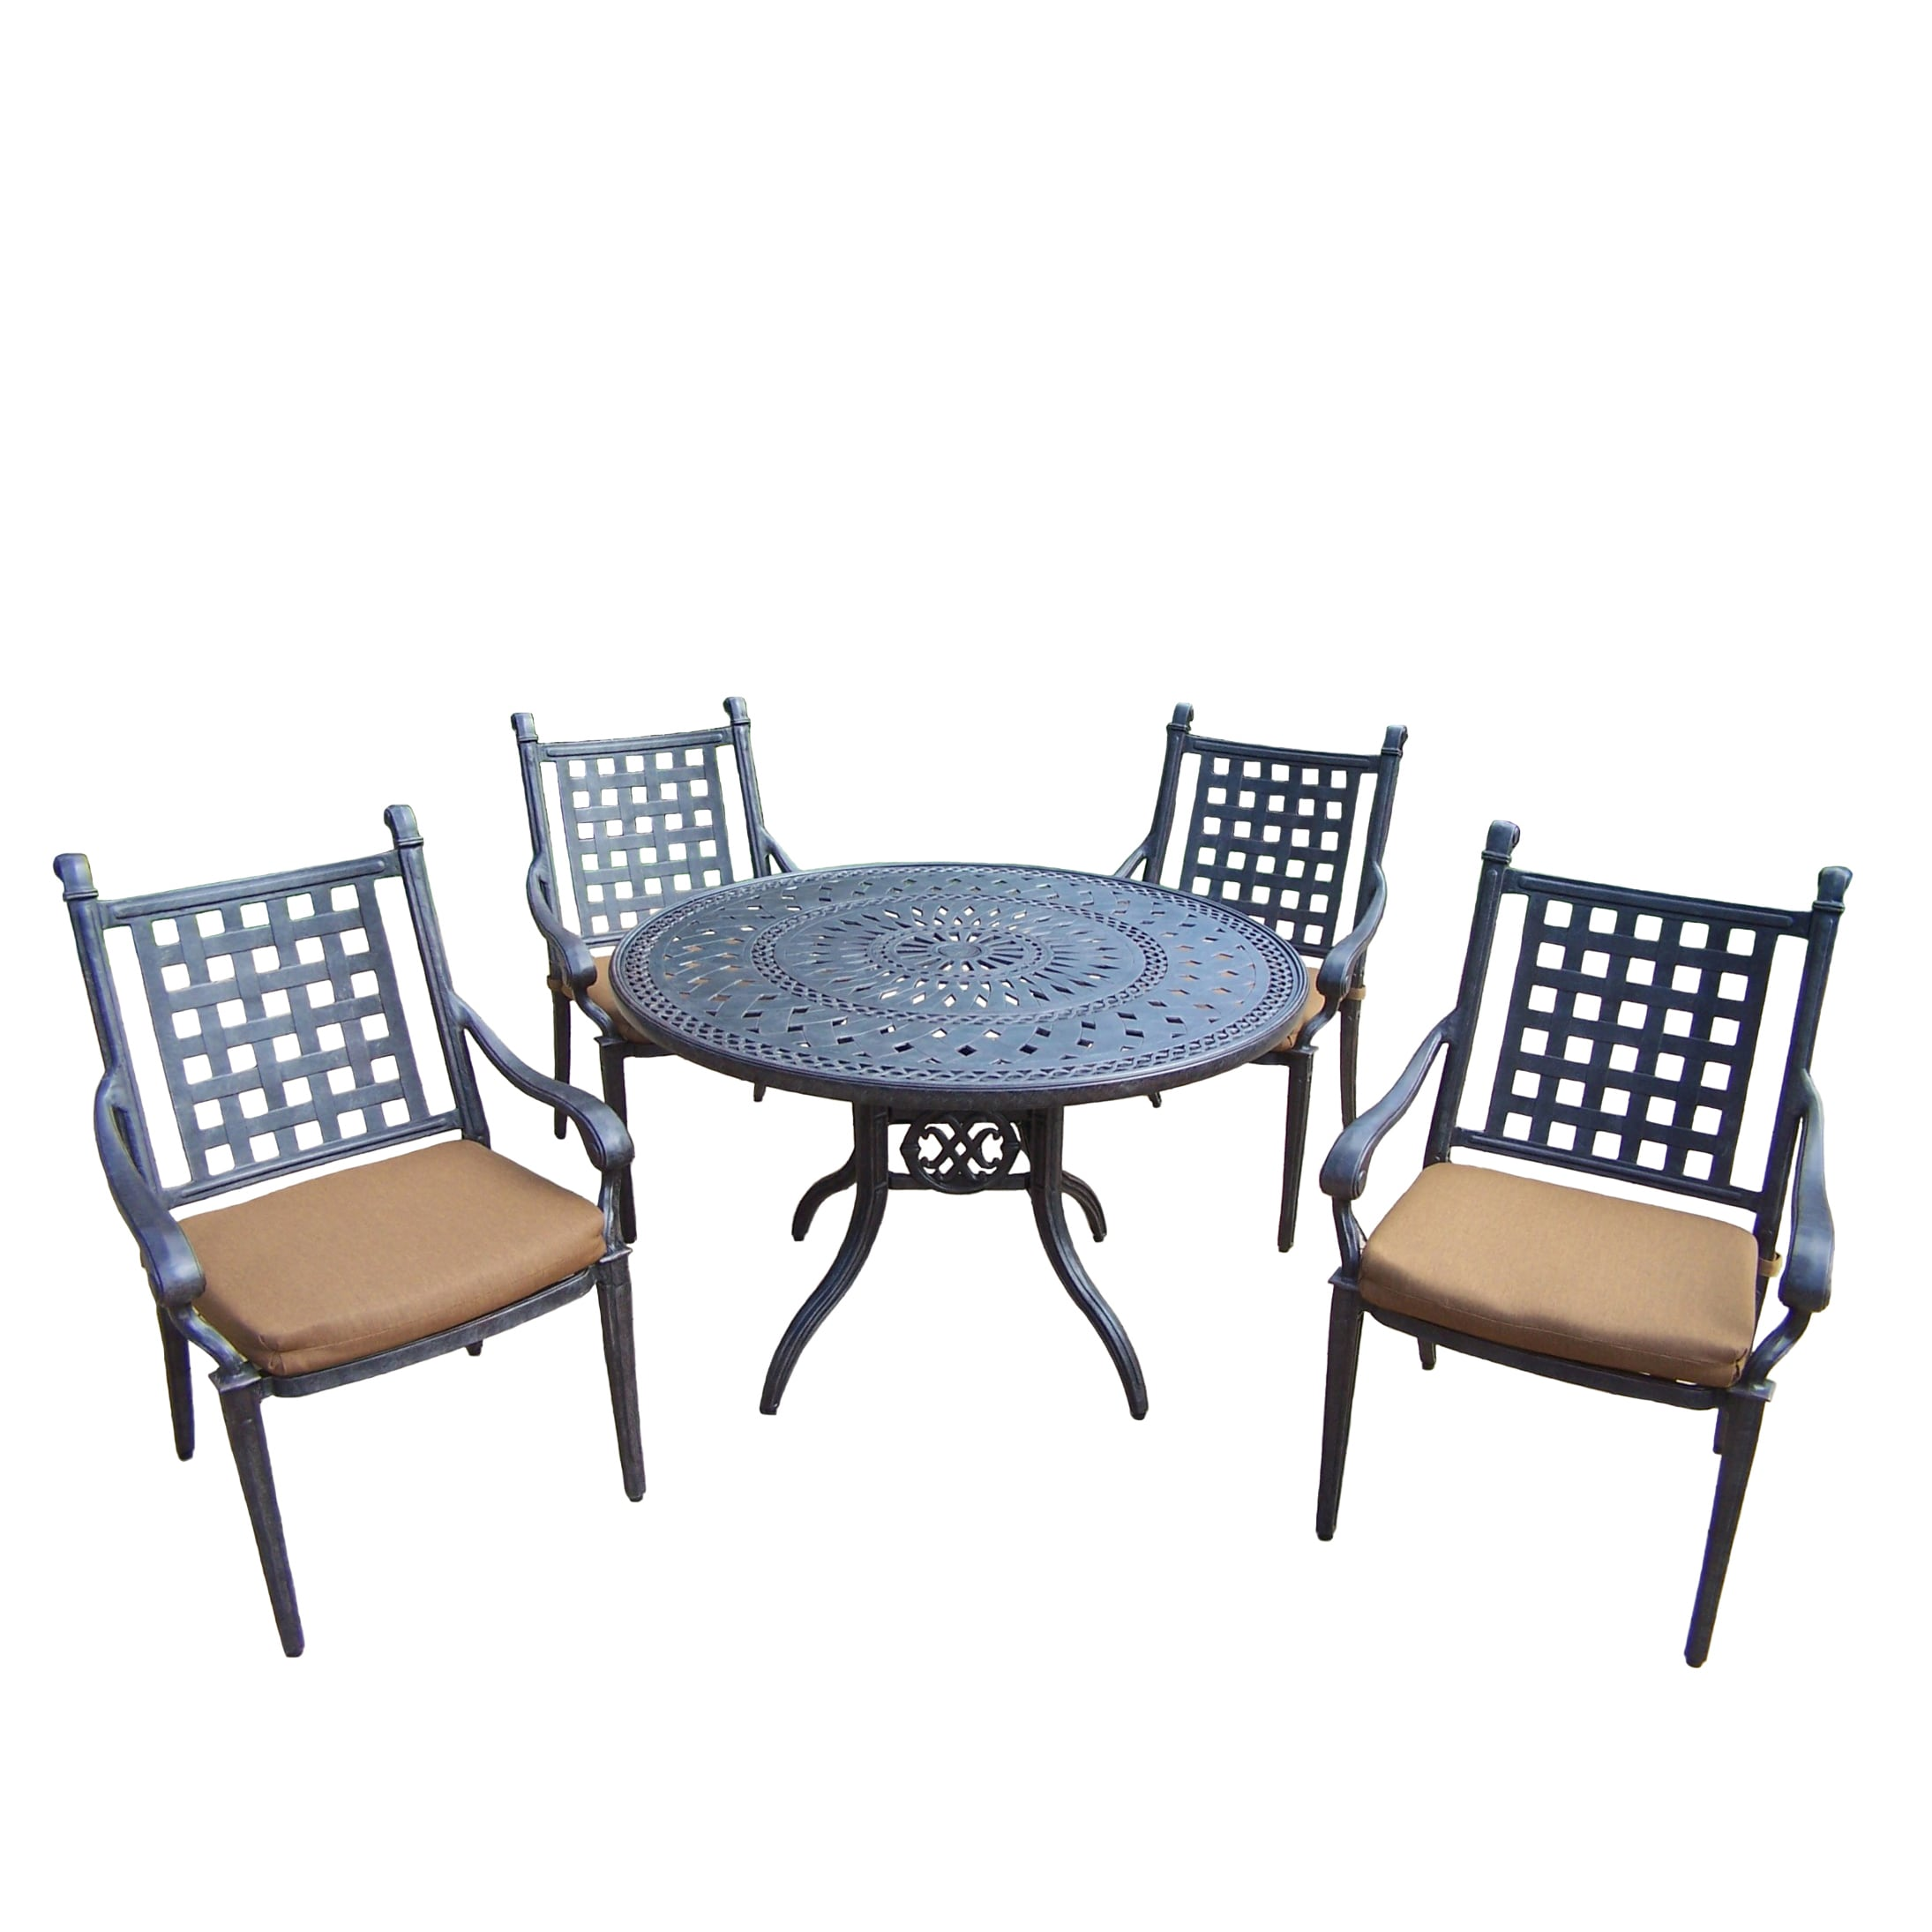 Dining Set With 46 Inch Table 4 Stackable Chairs And Cushions